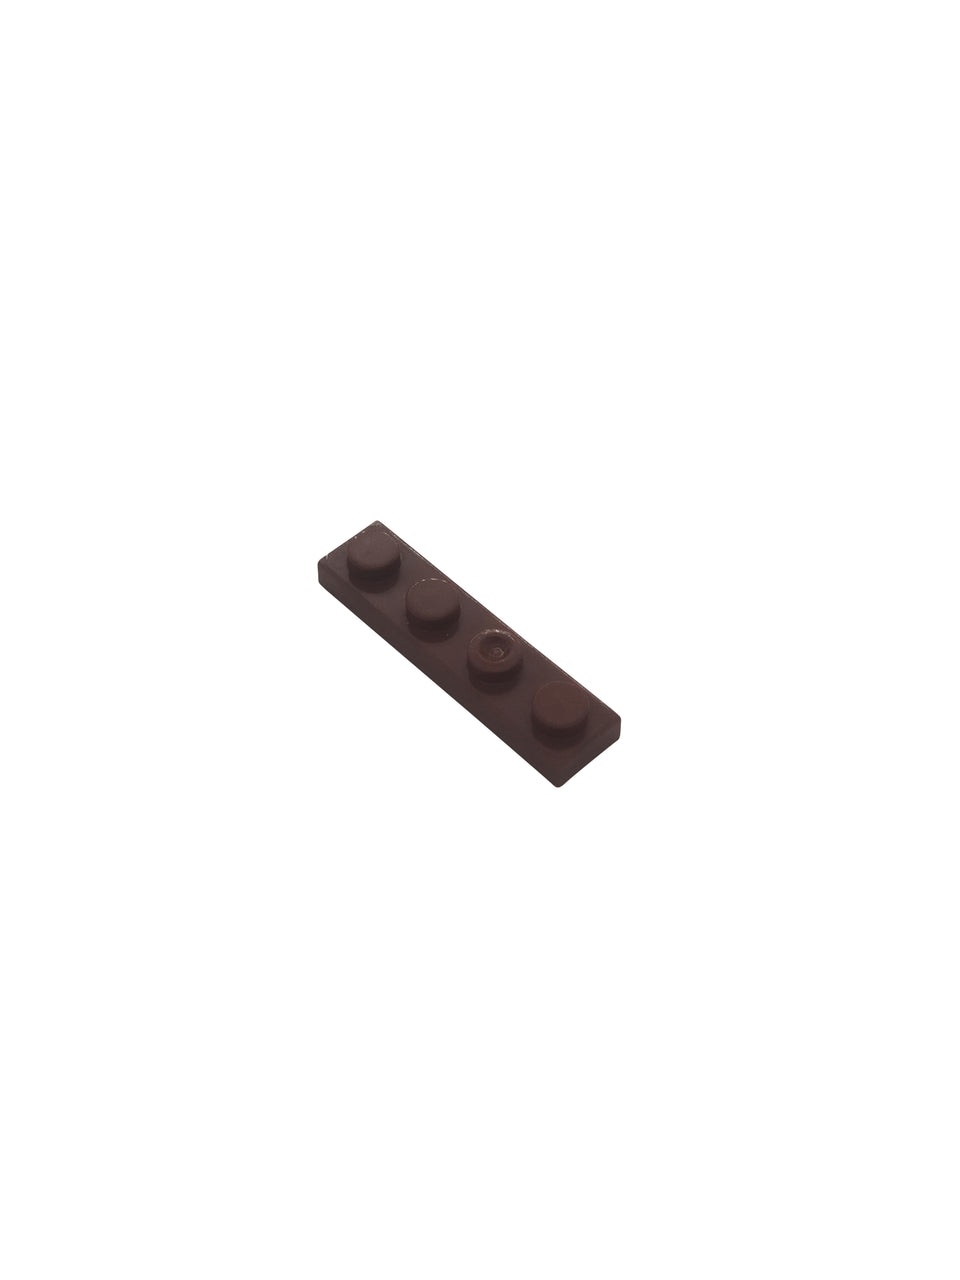 1*4 Brown surface - lego